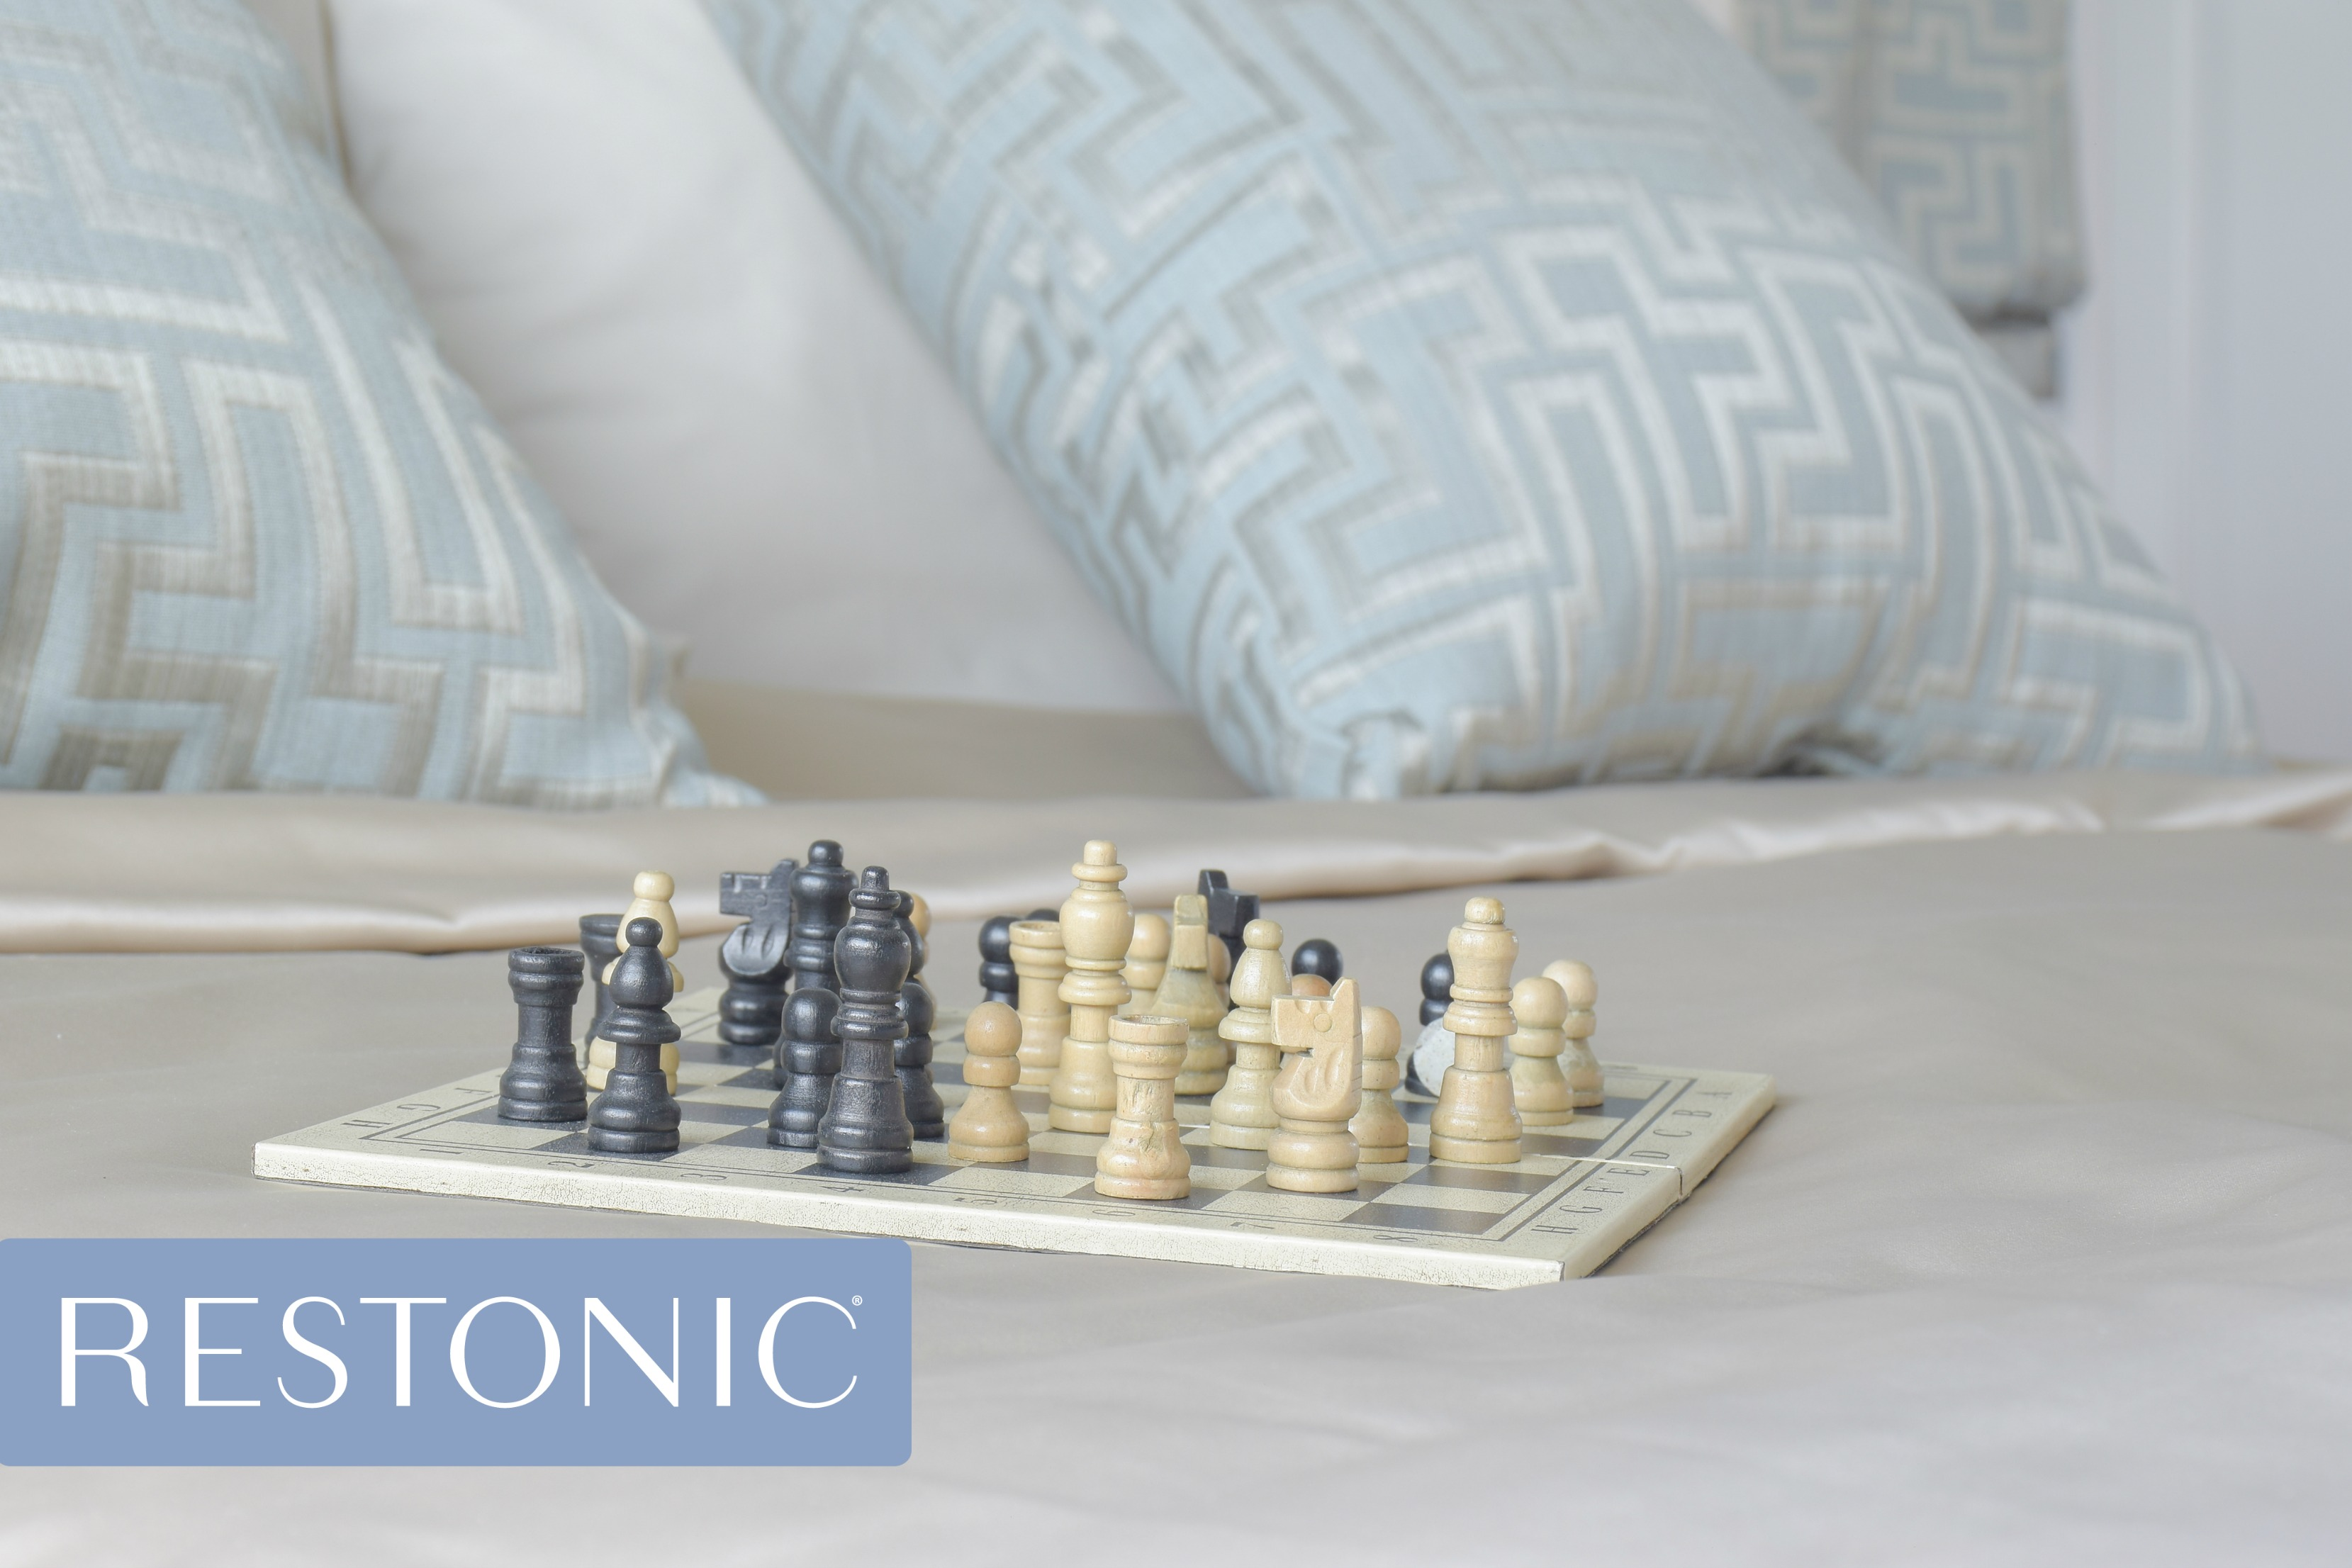 A new Restonic mattress with a chess board sitting on top.